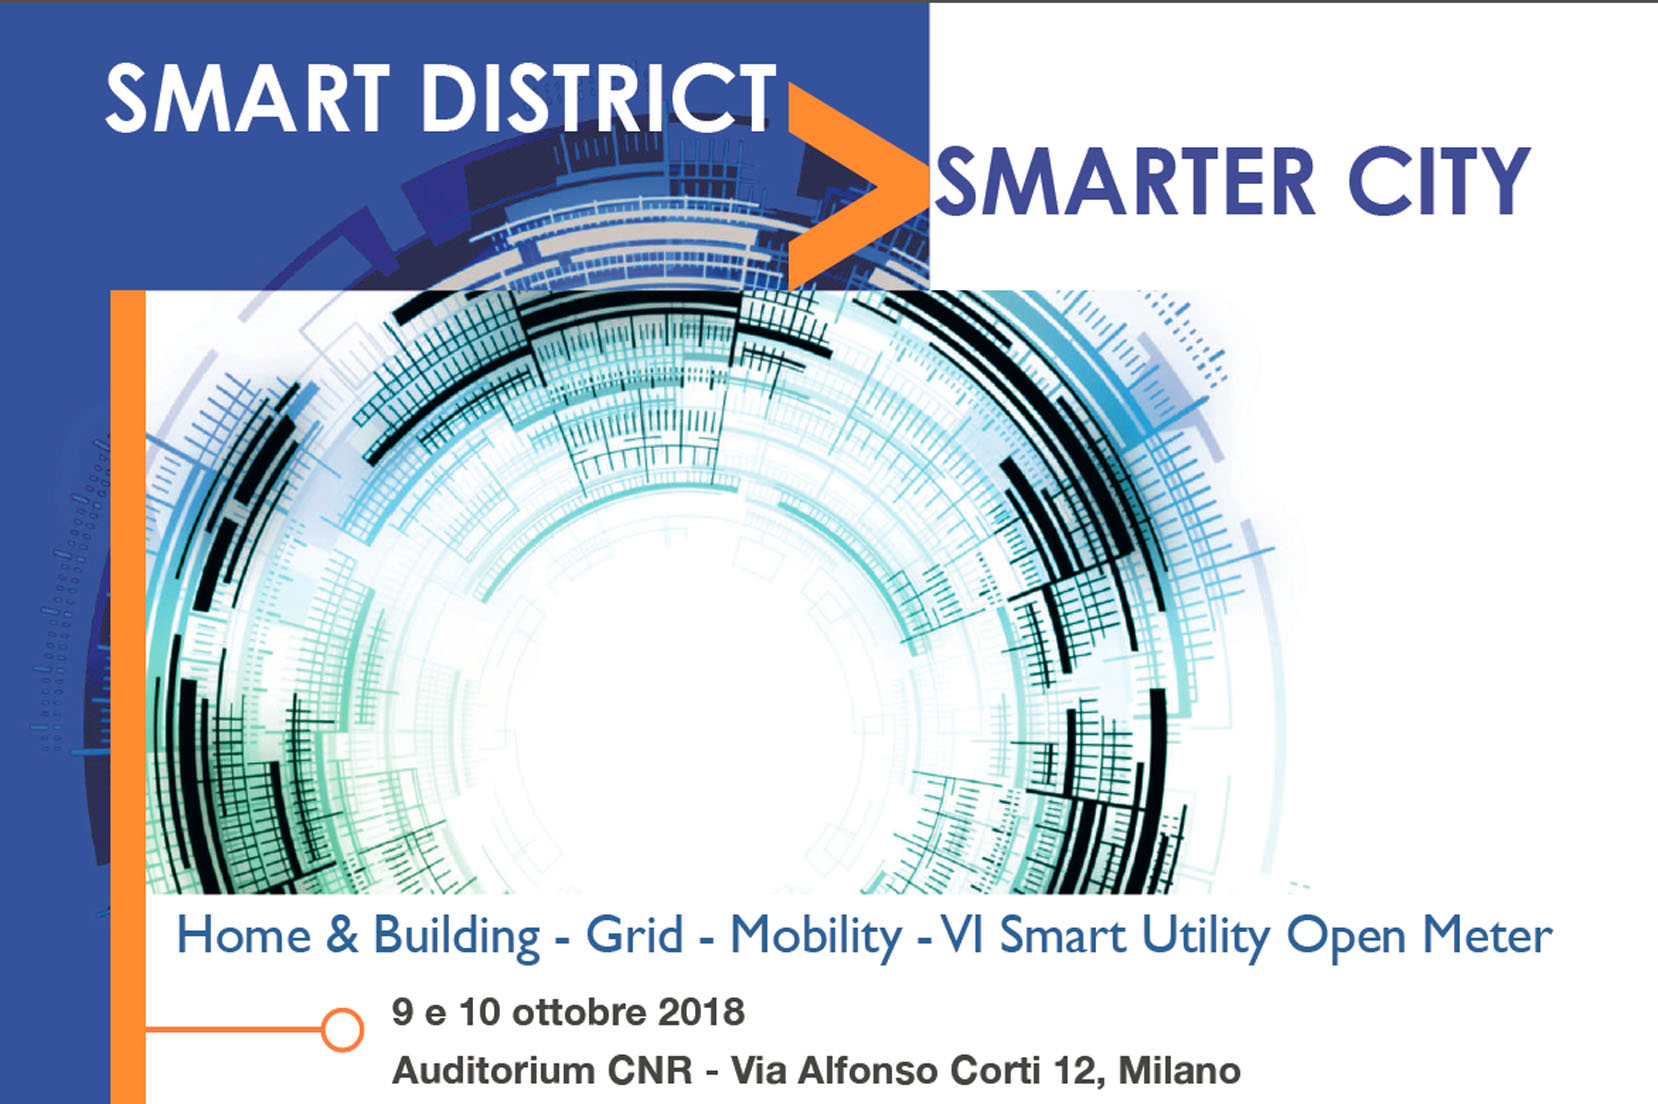 ANIE CSI: SMART DISTRICT > SMARTER CITY